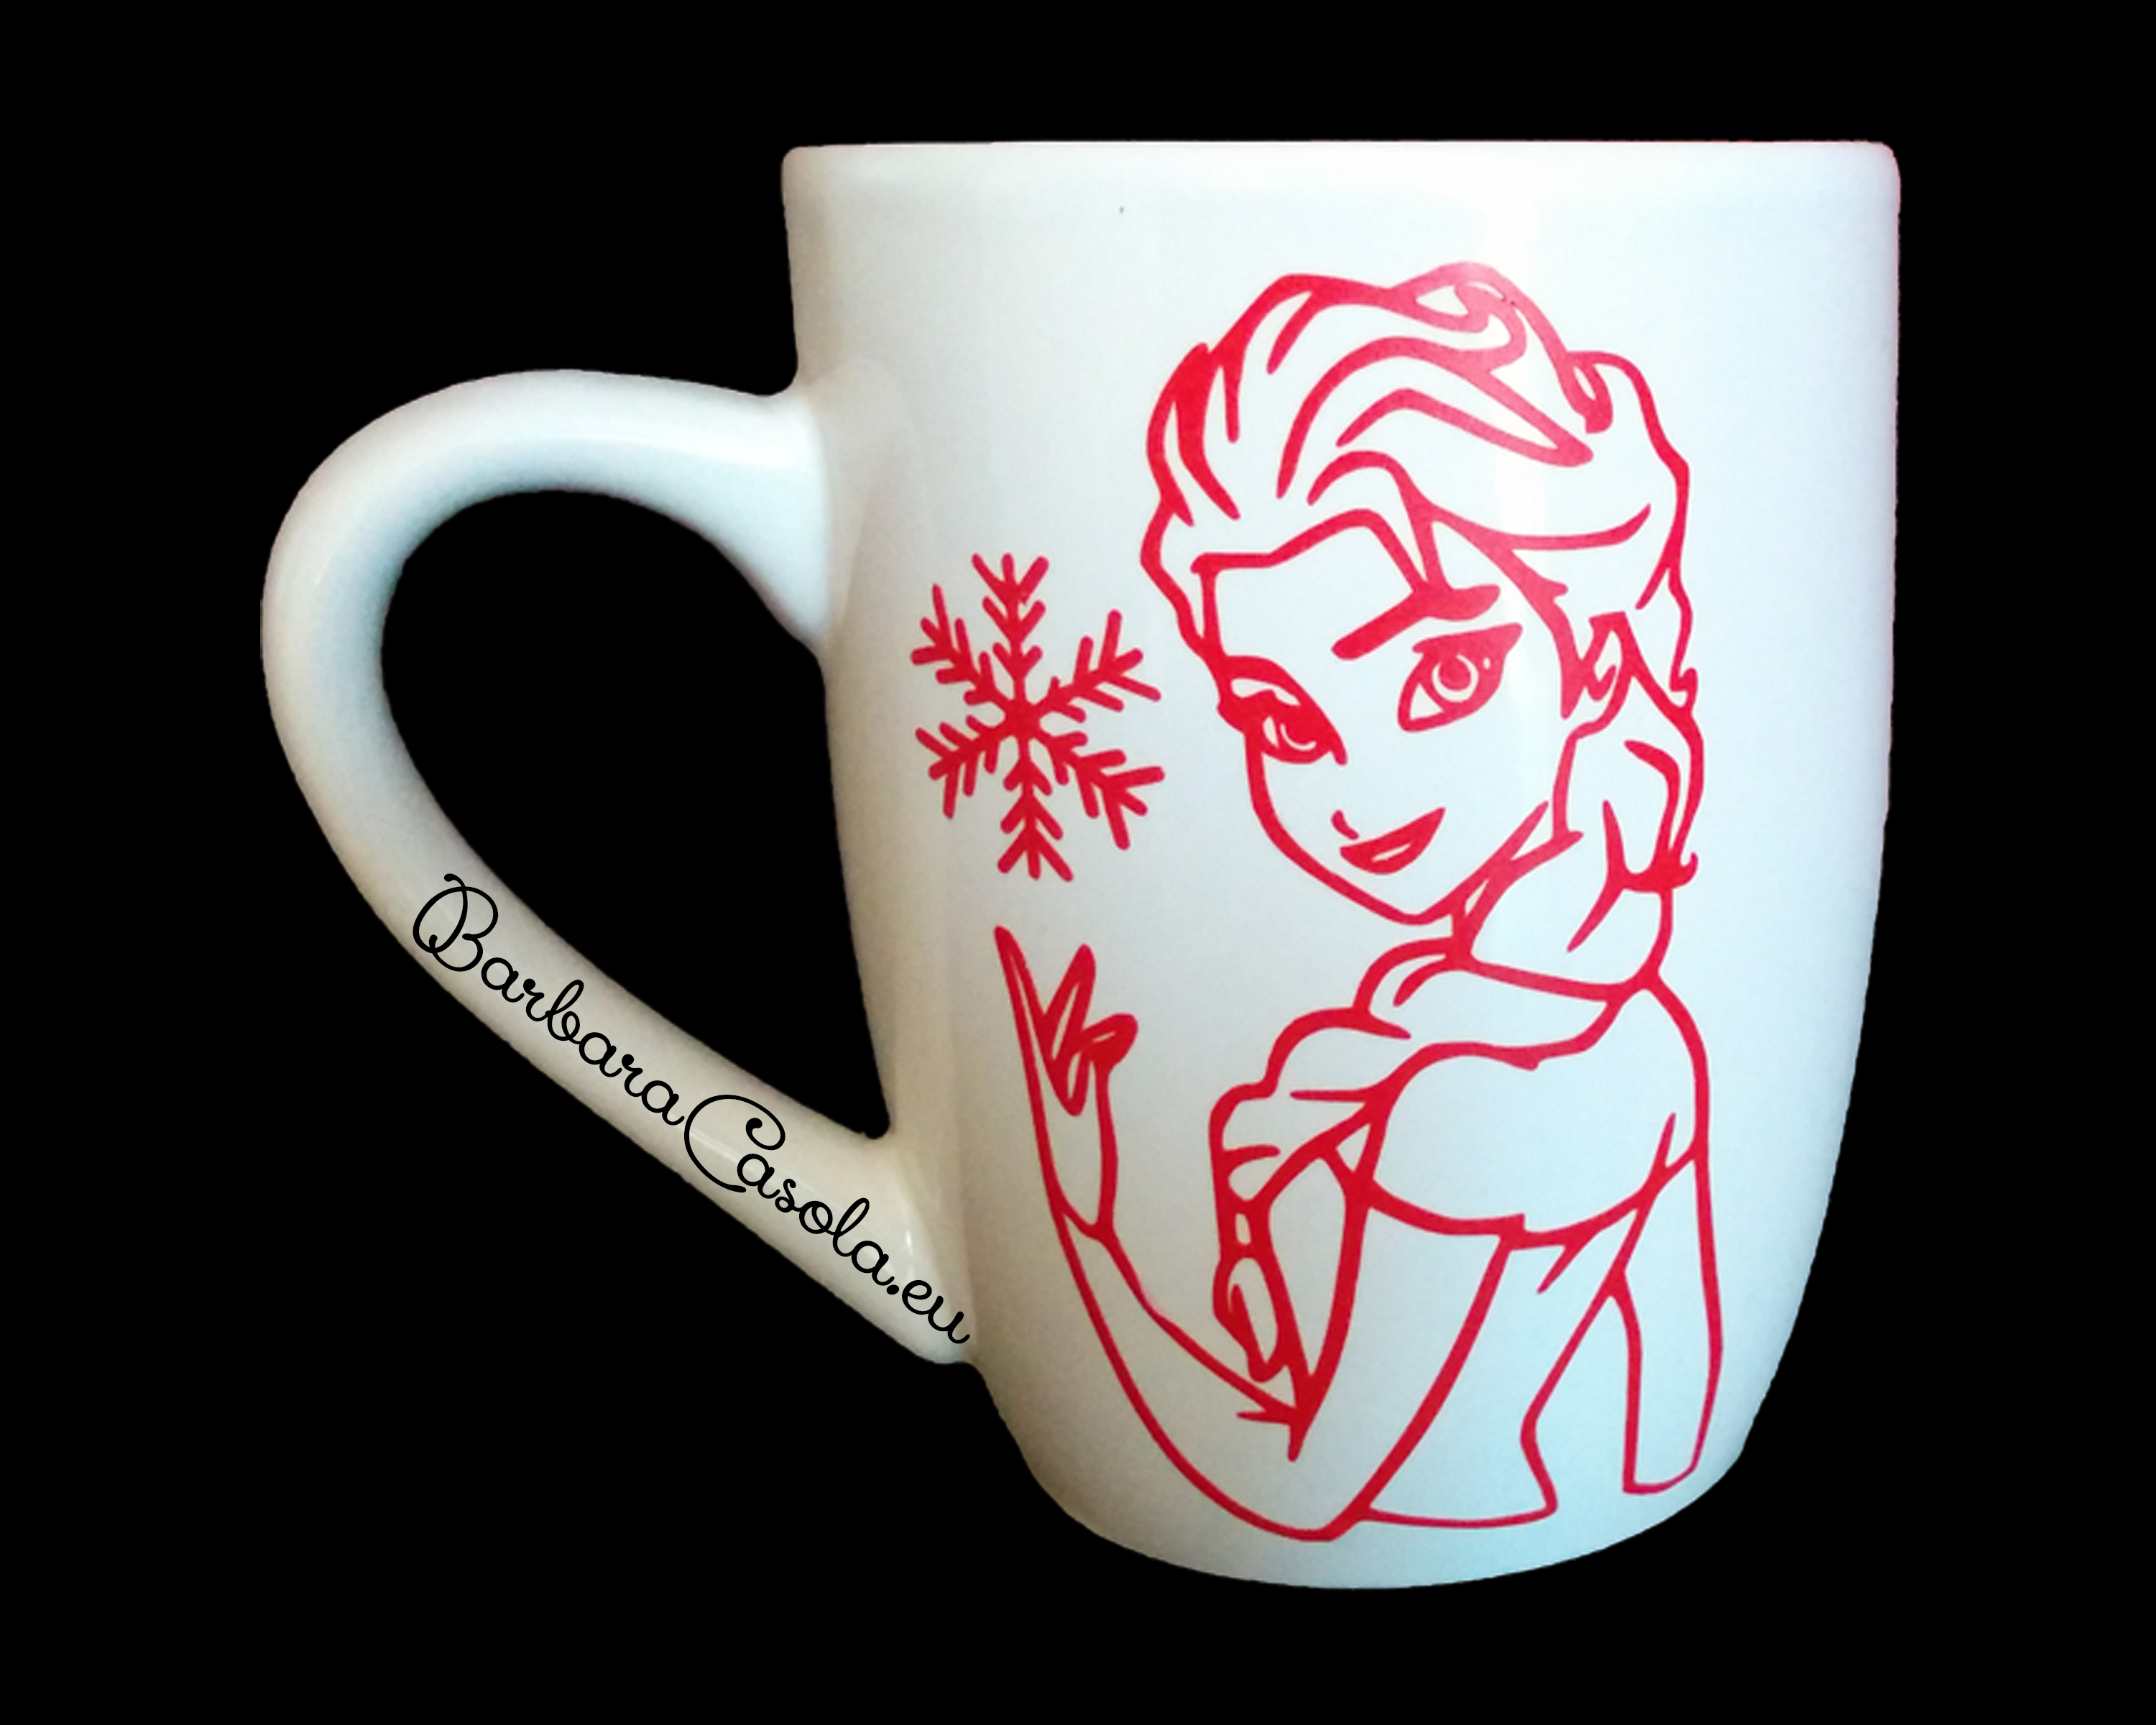 Tazza di Frozen decorata in vinile